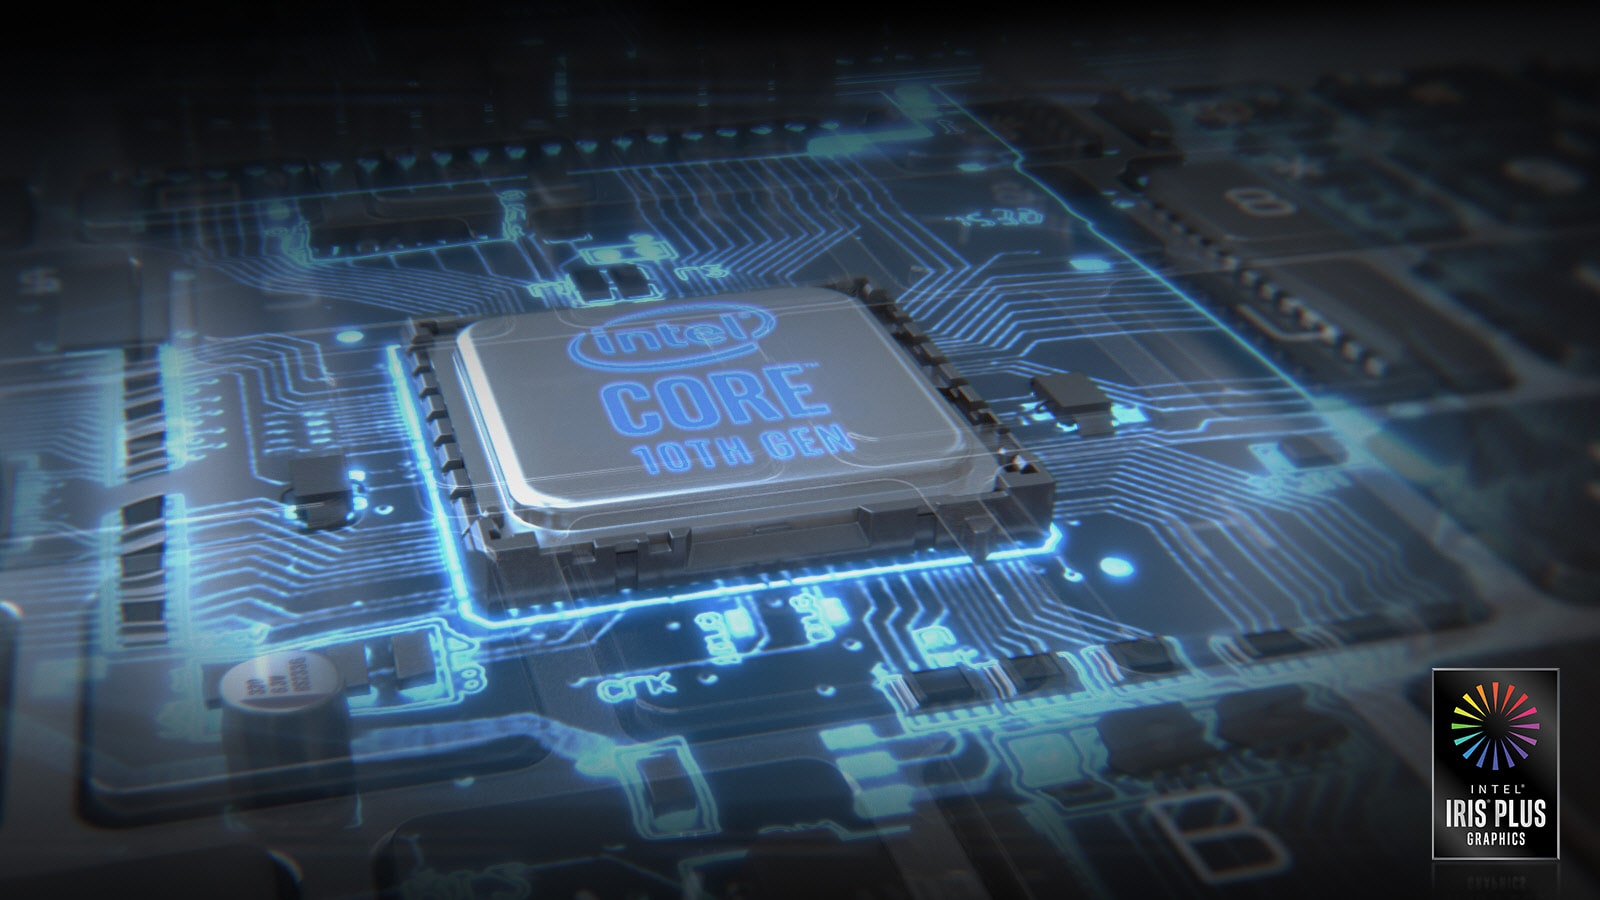 Image of Intel processor with Intel logo